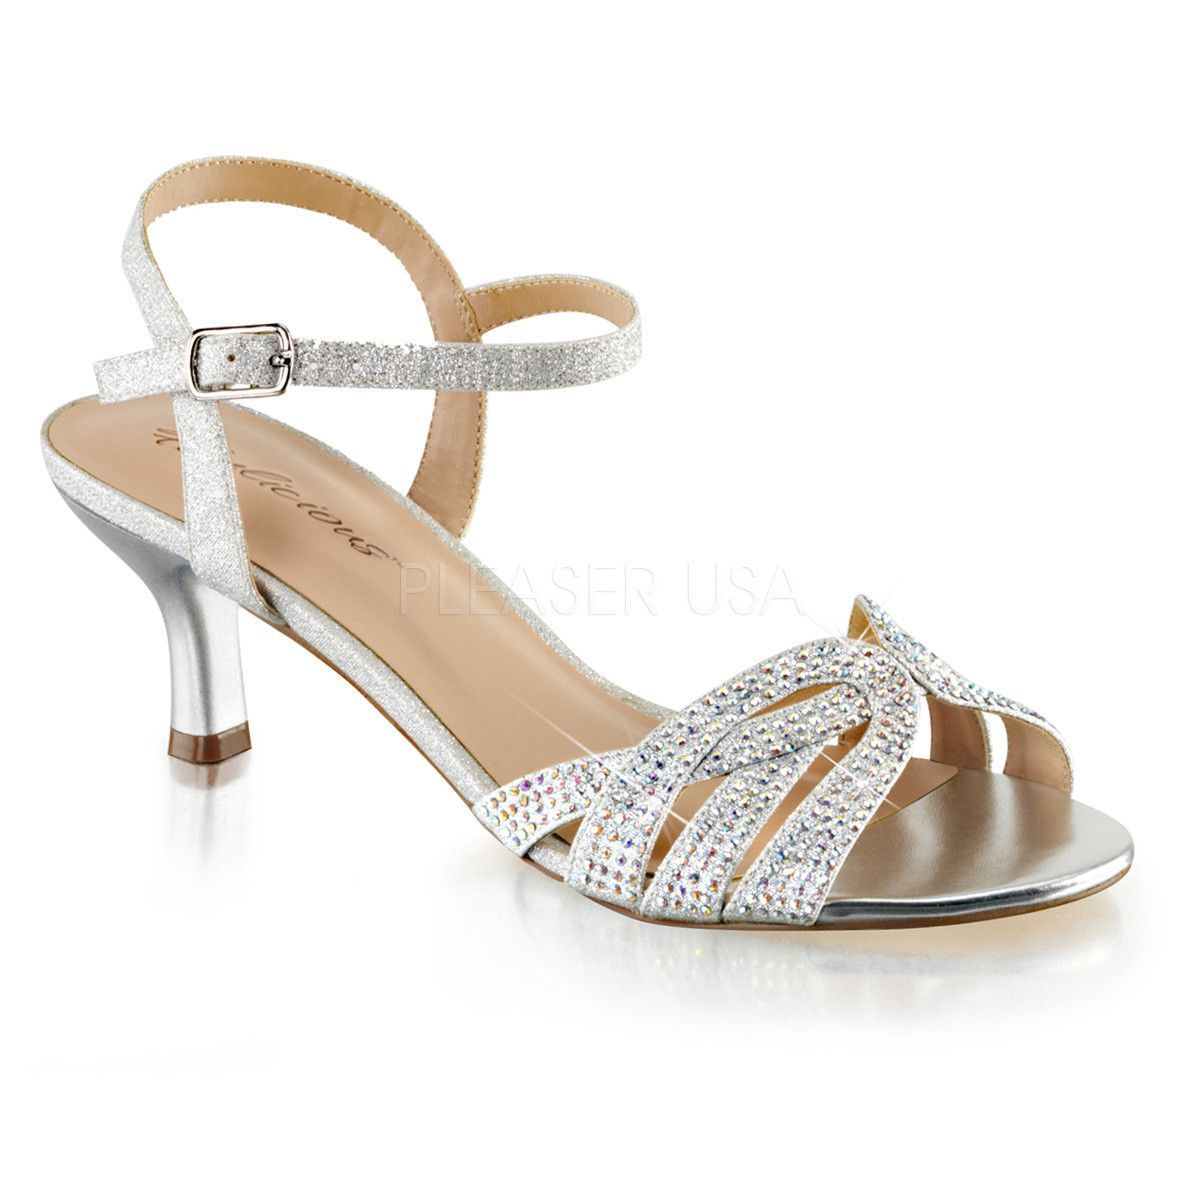 Fabulicious Audrey 03 Silver Shimmering Fabric Ankle Strap Sandals Flapper Shoes Bridal Shoes Vintage Bridesmaid Shoes